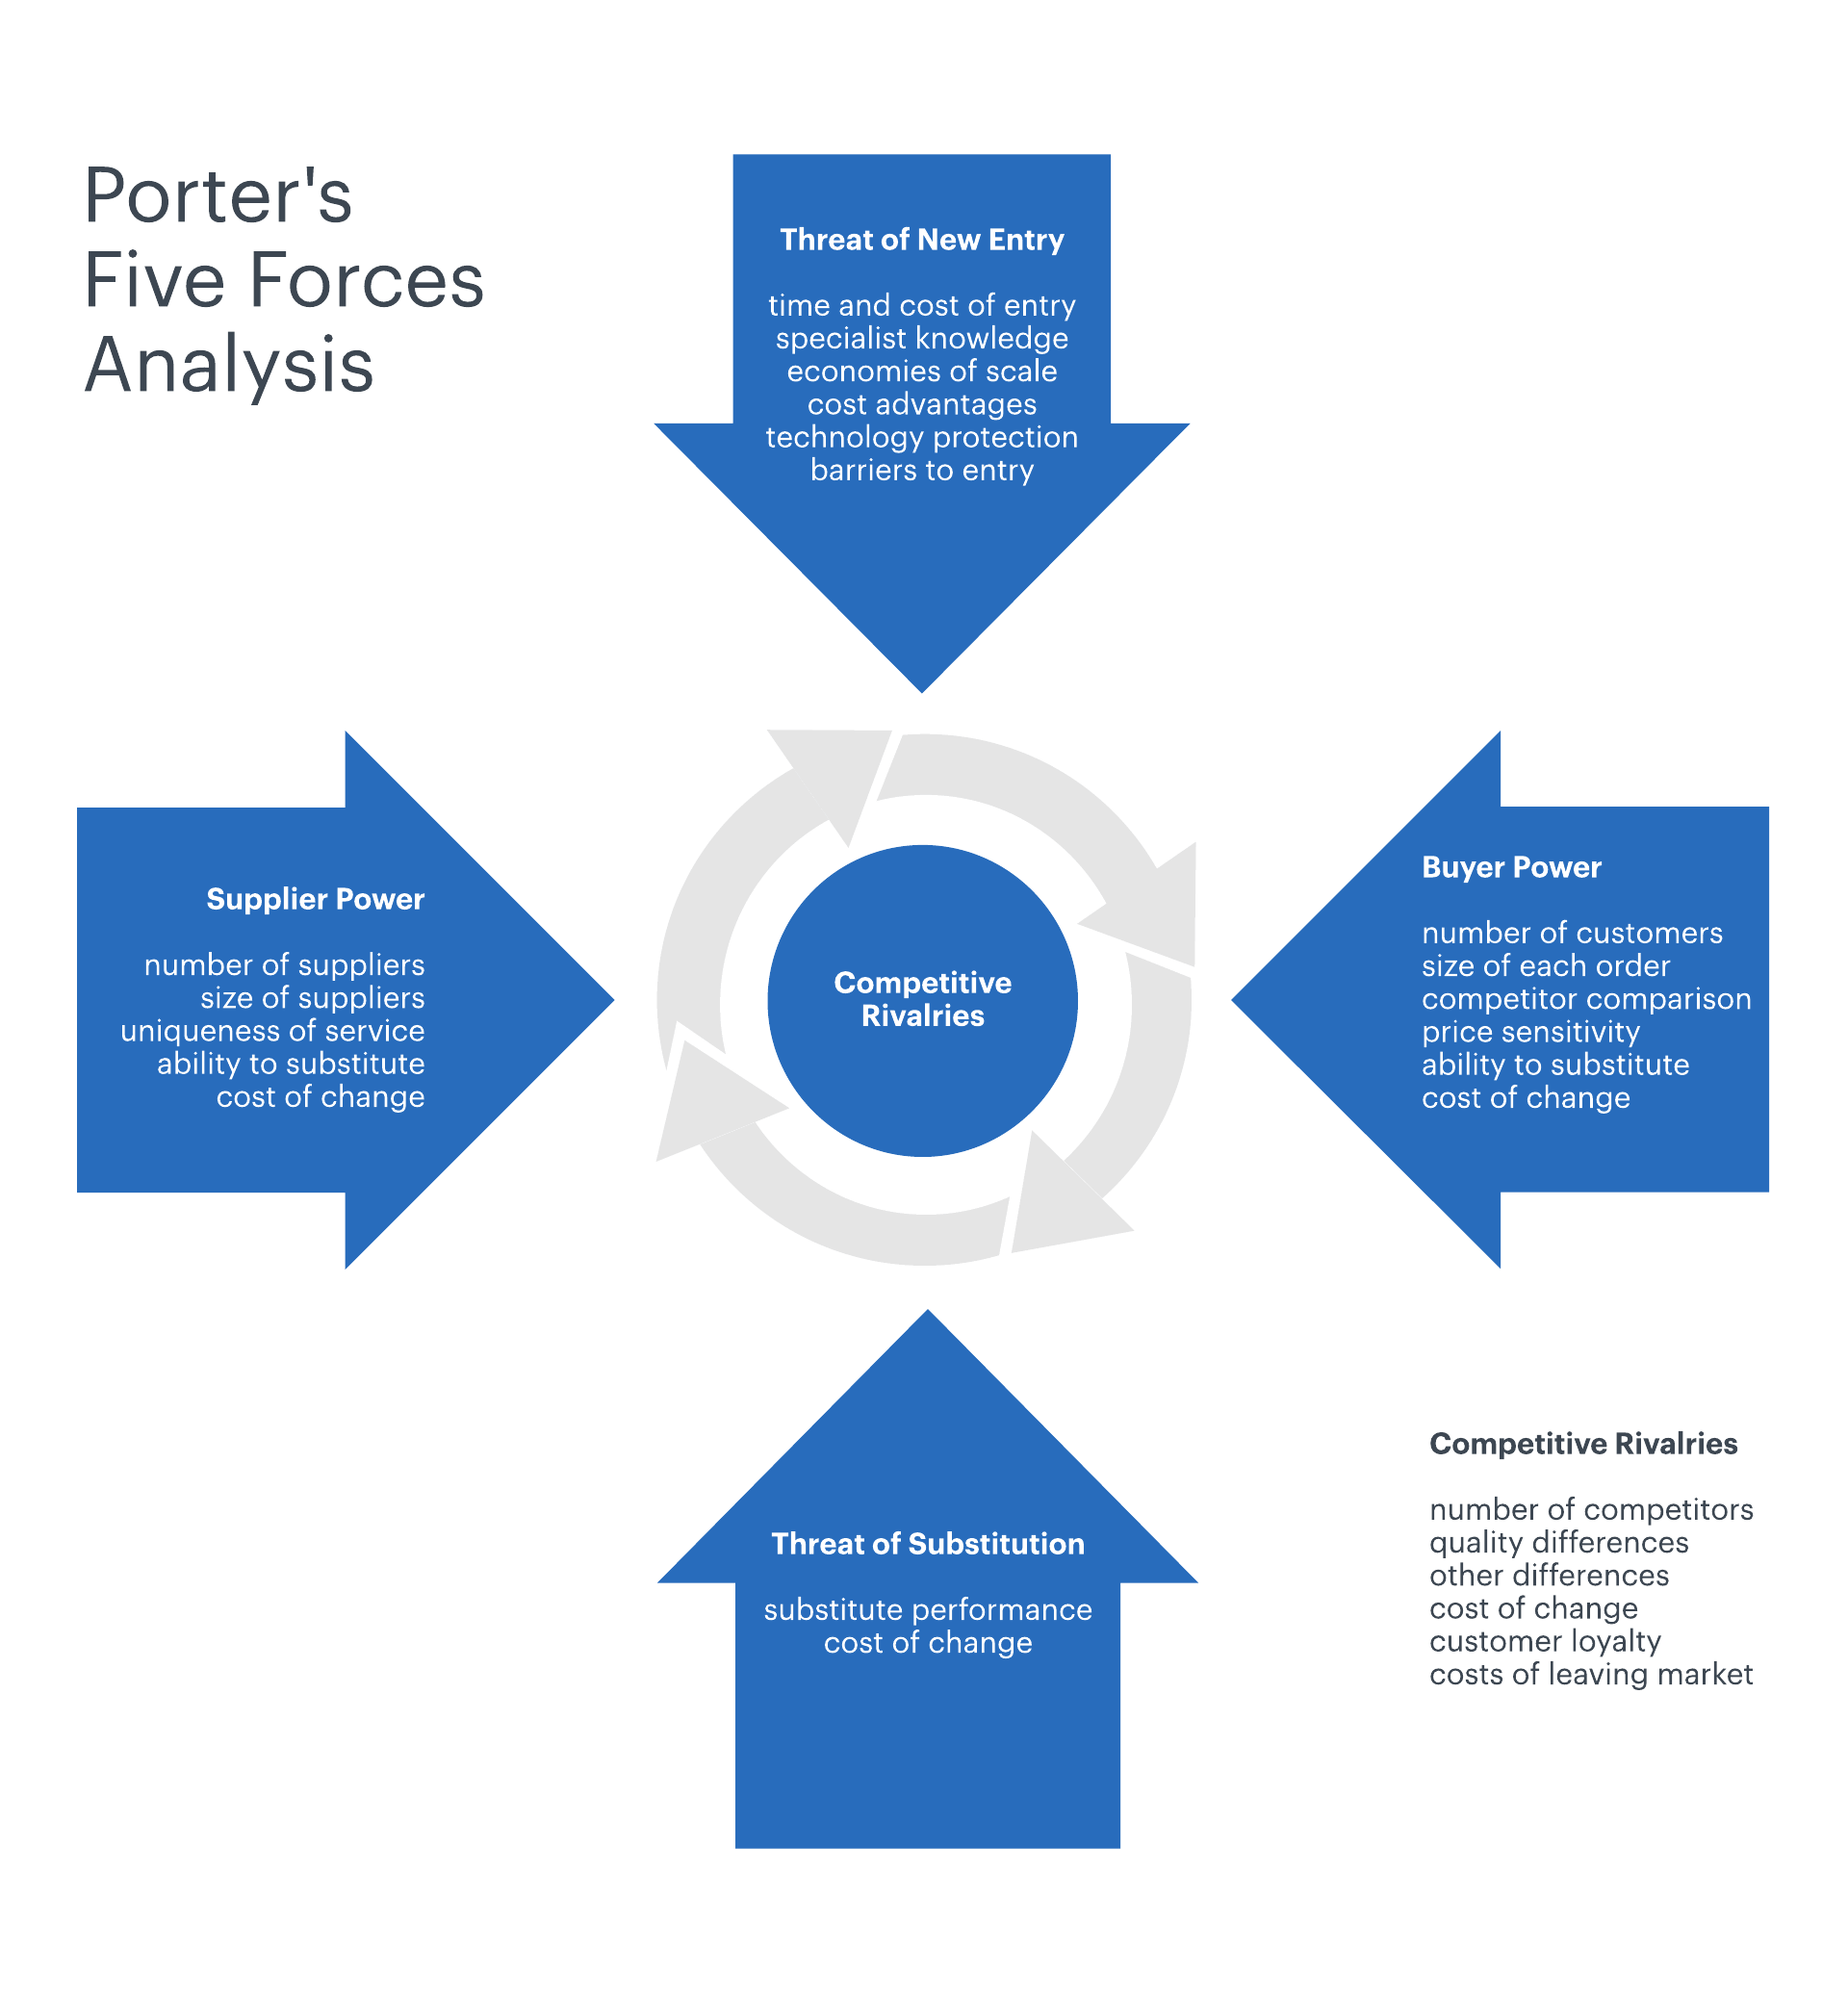 Porter's 5 forces are something to consider before starting a new business